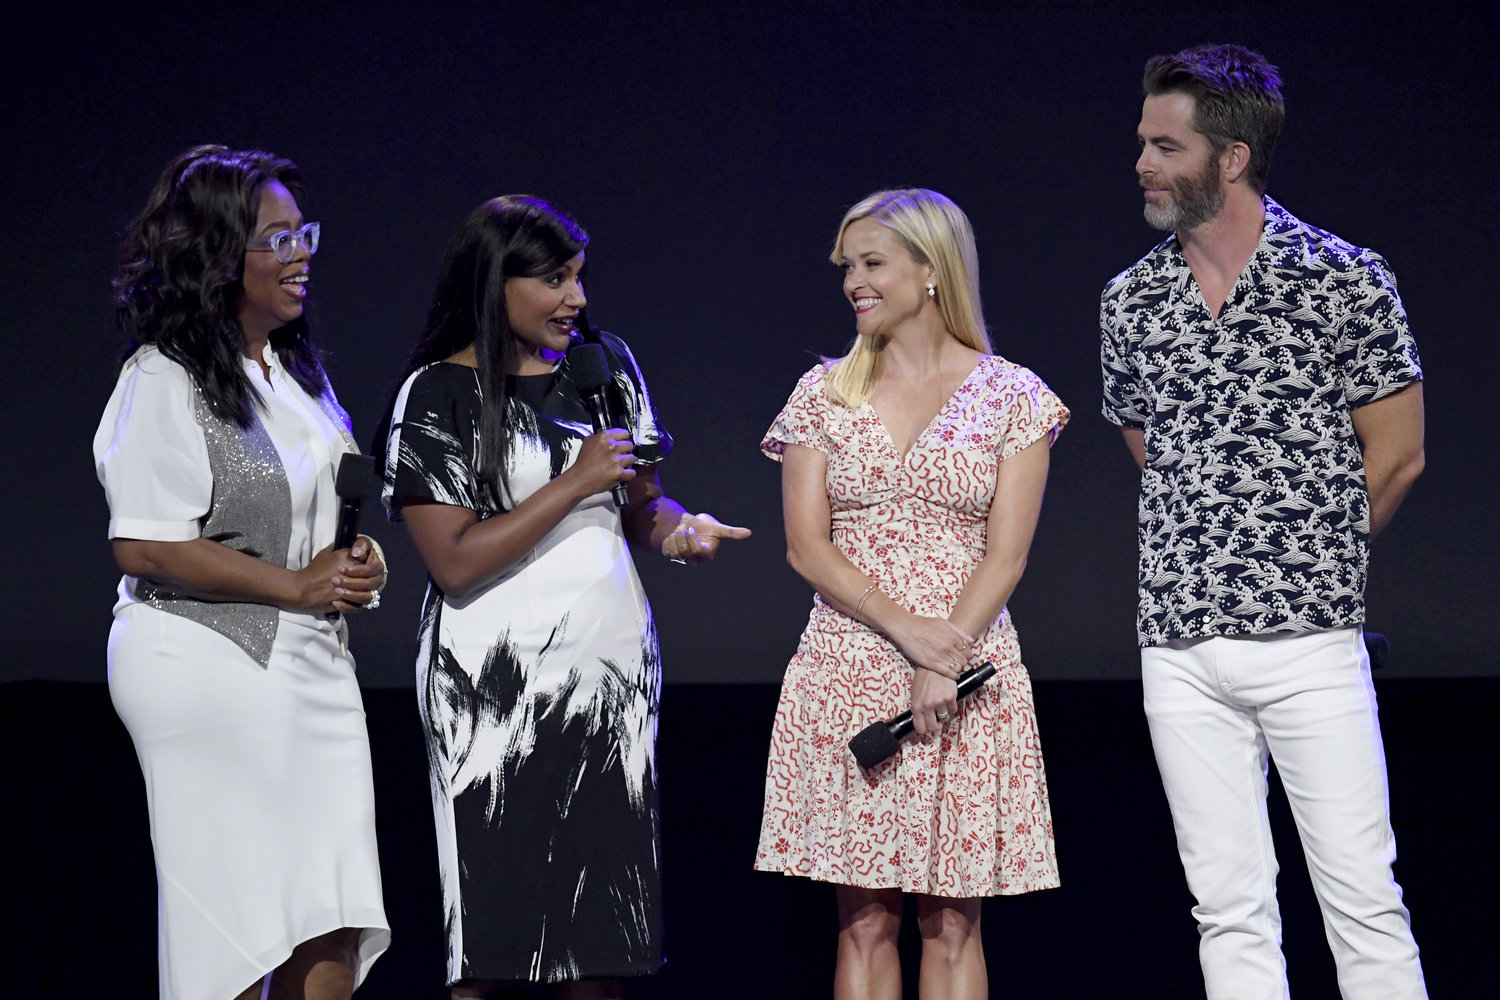 'A WRINKLE IN TIME.' Oprah Winfrey, Mindy Kaling, Reese Witherspoon, and Chris Pine at D23 Expo 2017. Photo by Disney/Image Group LA